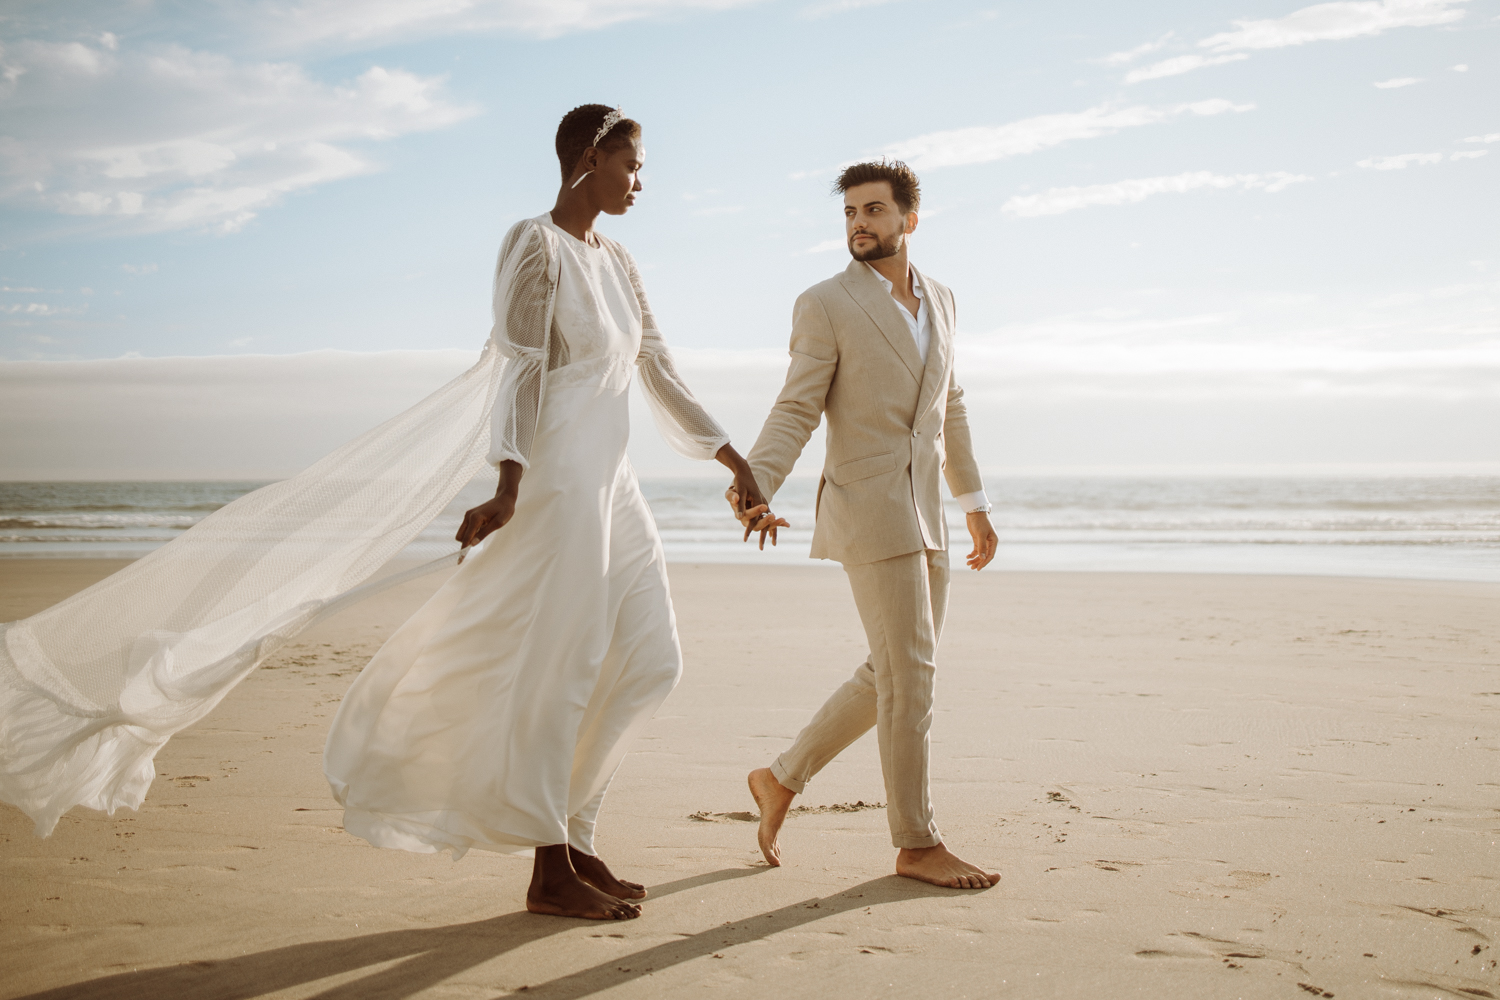 A wedding couple holds hands and walks along the beach.